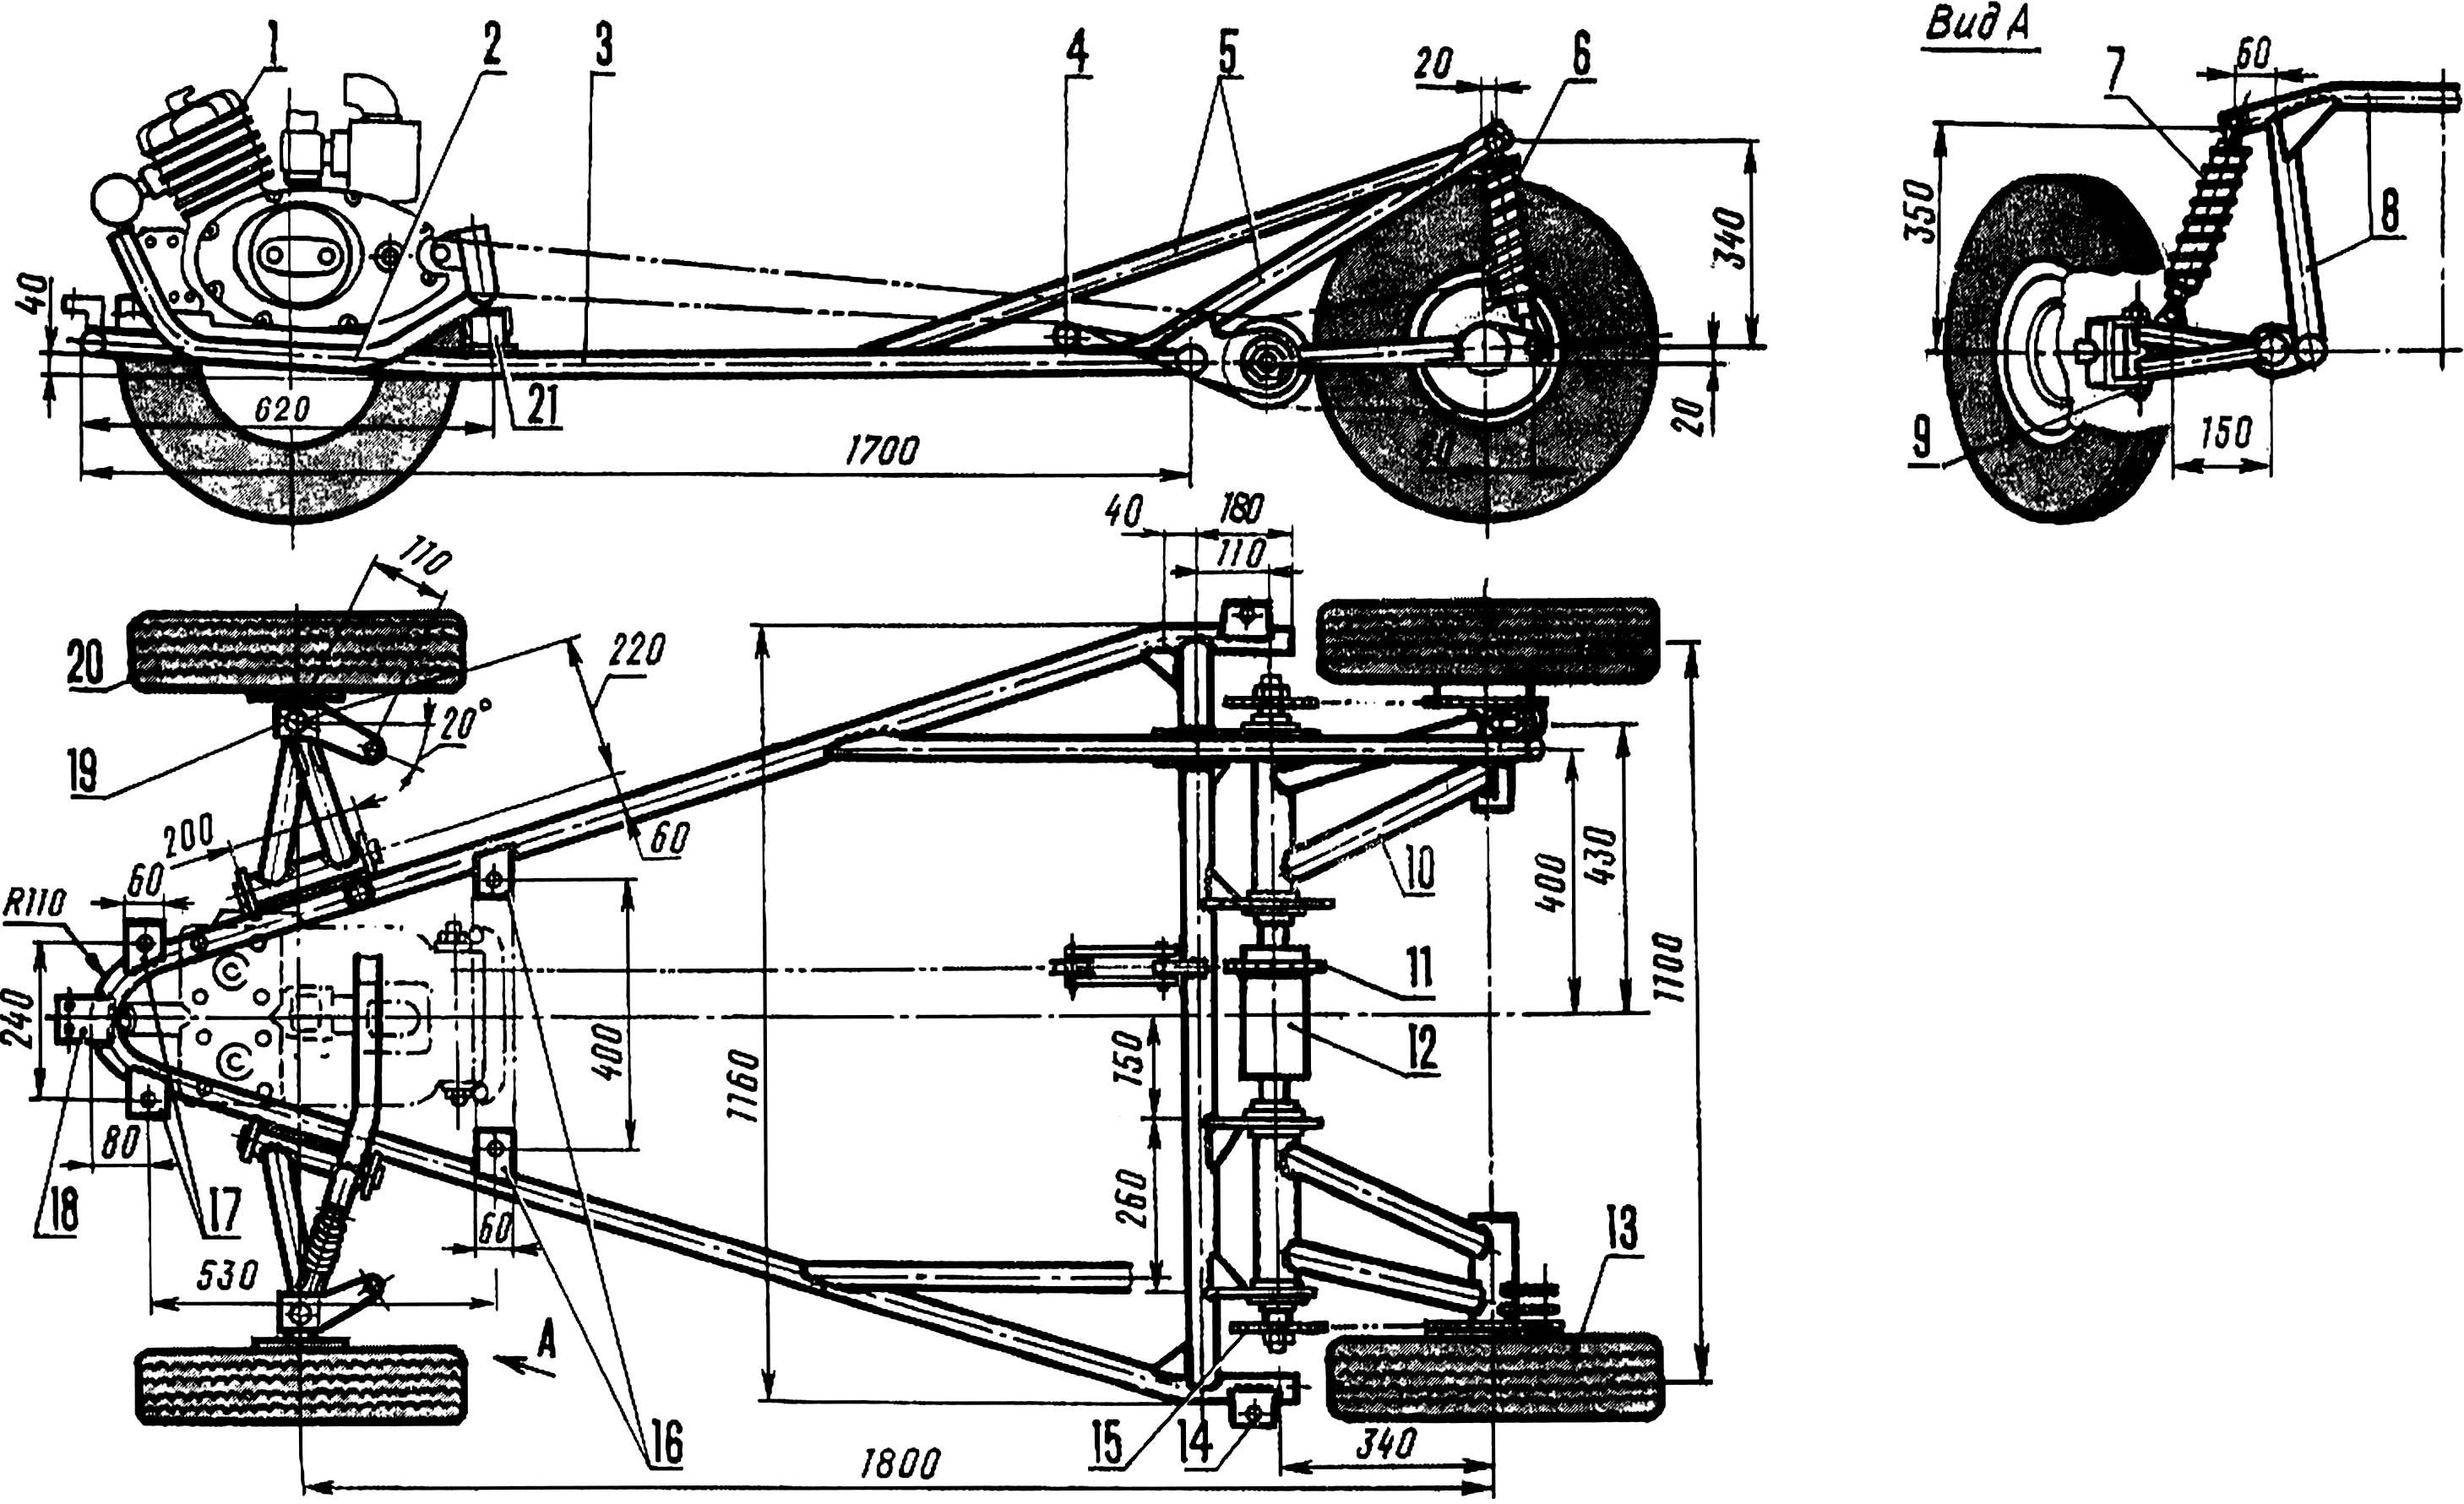 Fig. 2. The frame of the car